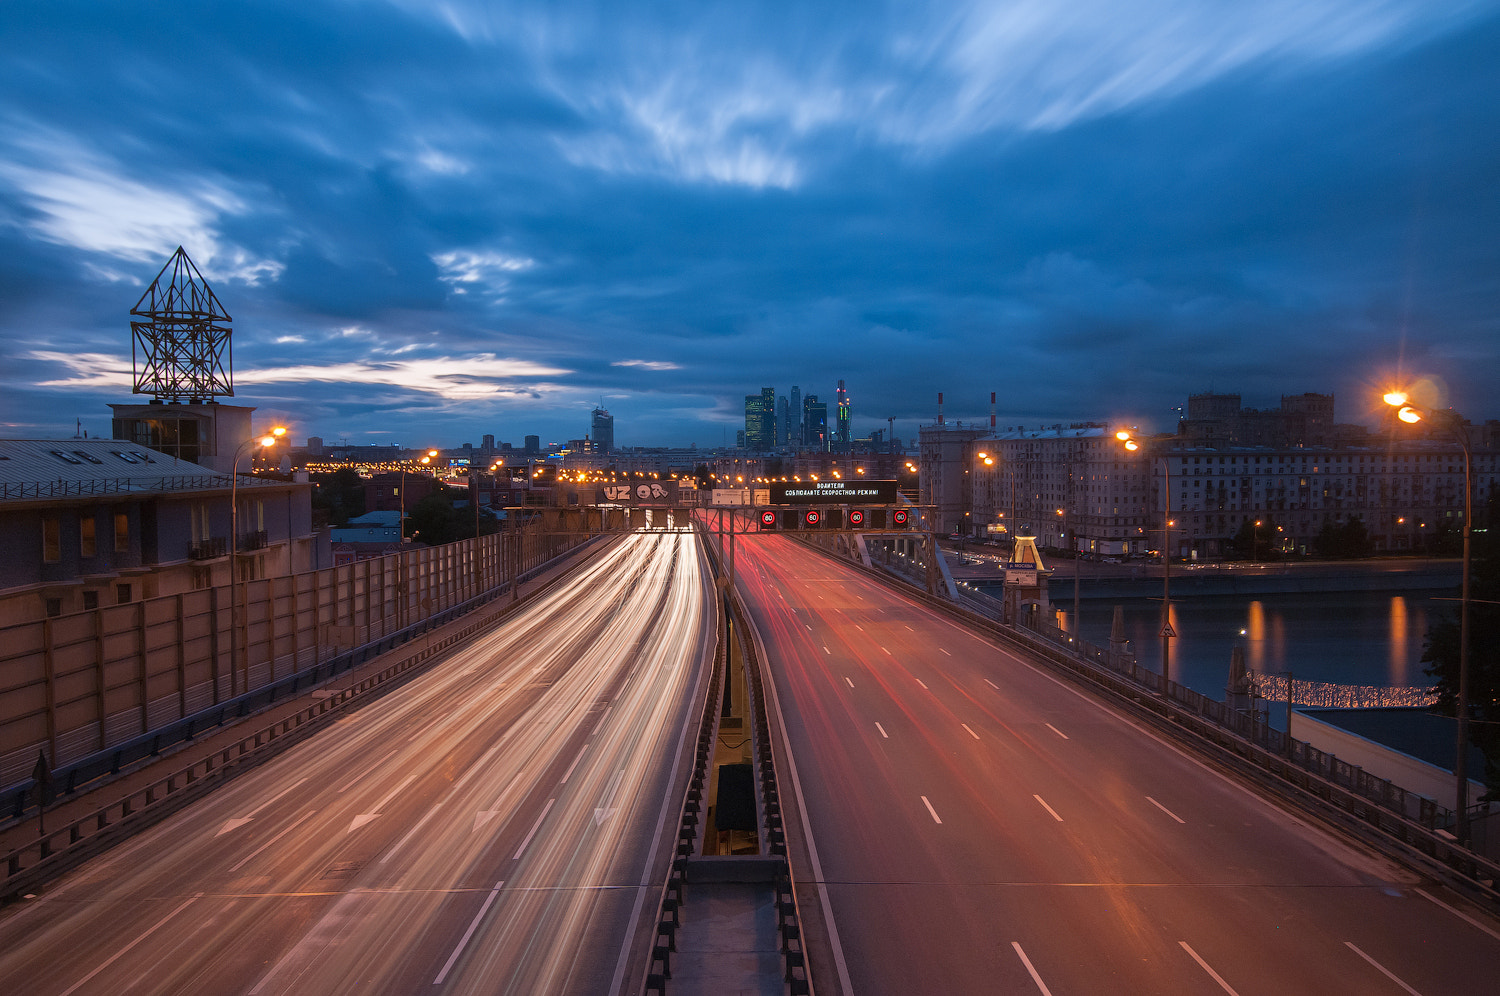 Photograph Moscow traffic by Alexei Zaripov on 500px